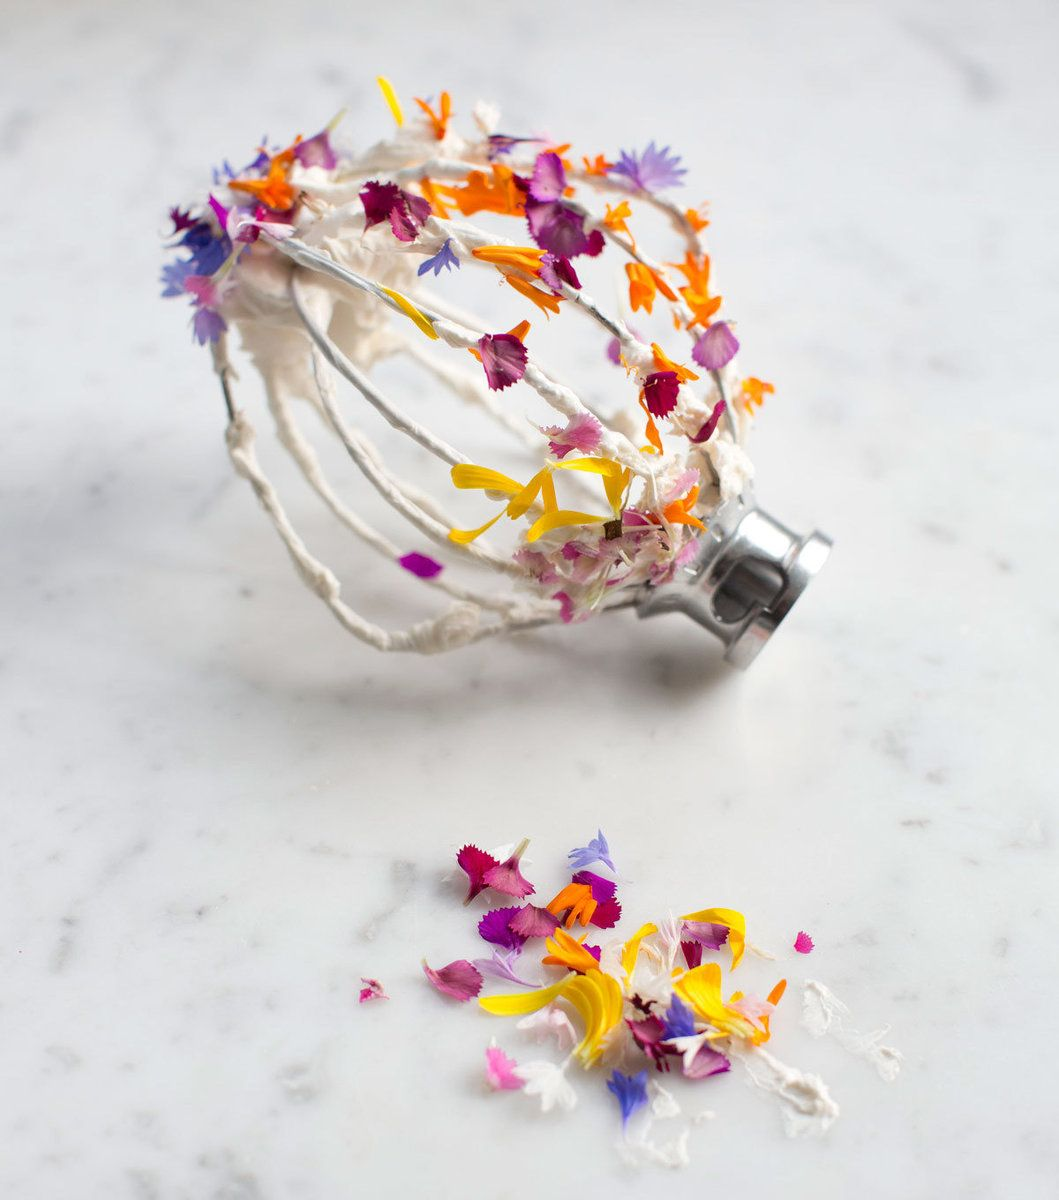 Cooking with Flowers. | Innovation | Pinterest | Flowers, Edible ...